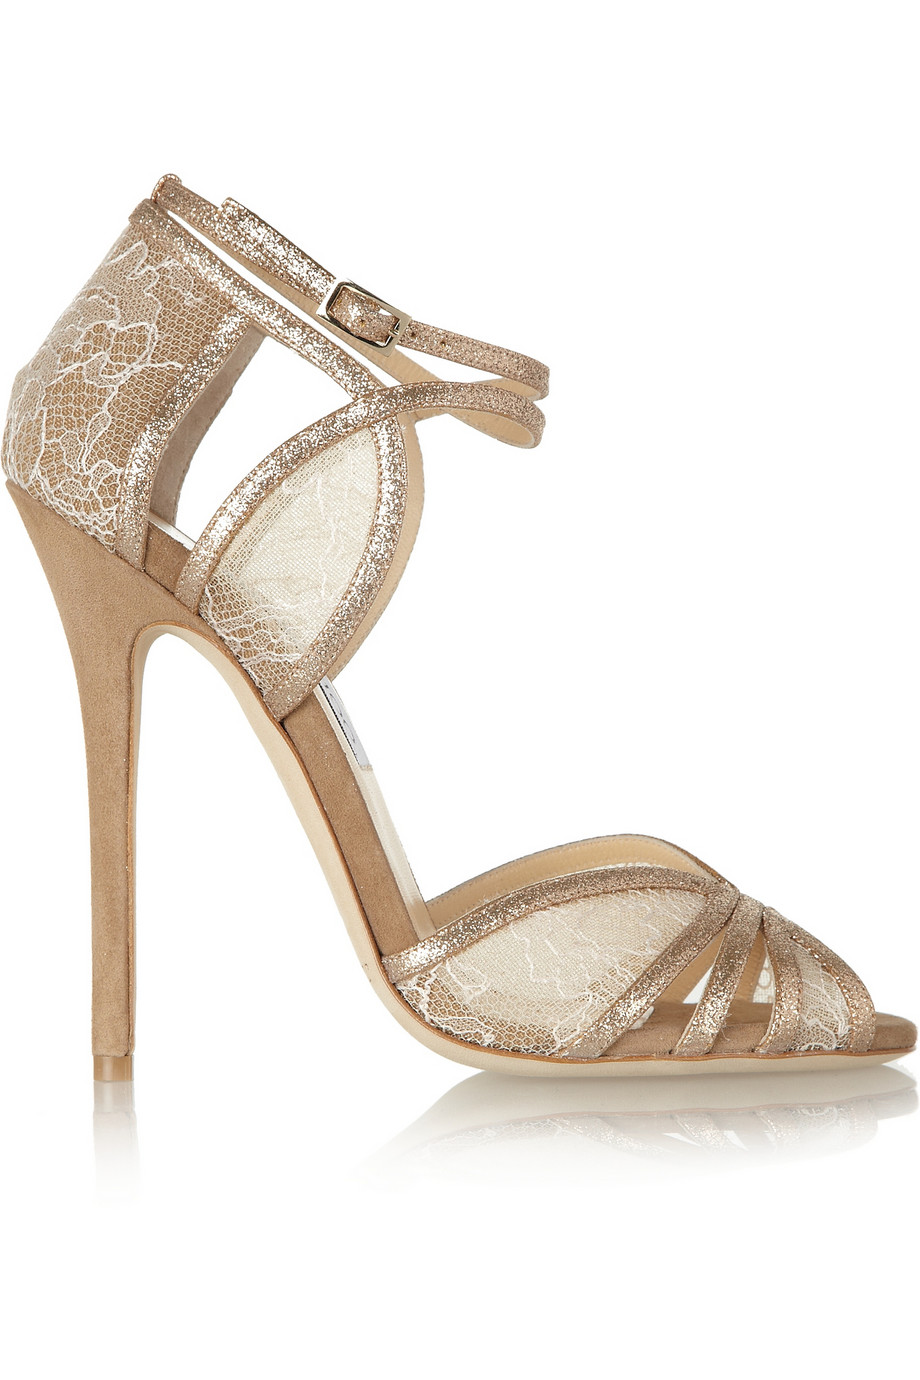 Fitch lace and glitter-finished suede sandals | THE OUTNET